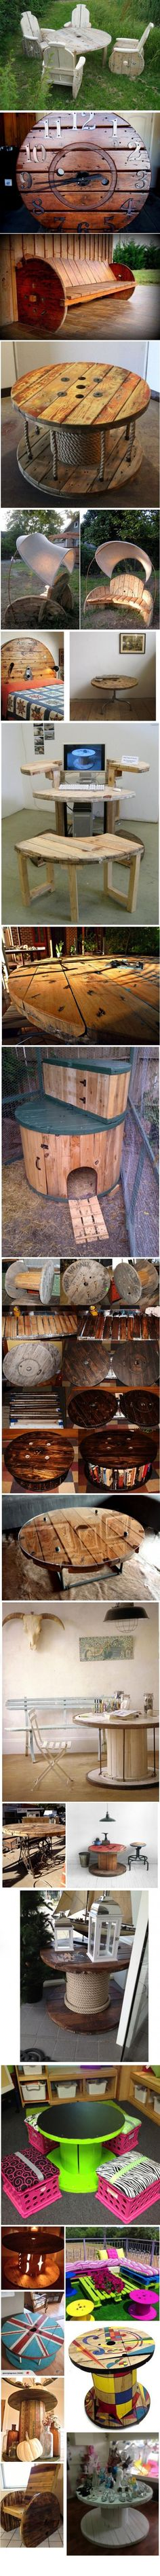 Collection of ideas for repurposing a wire spool. My favorite is the clock and the whole reason I shared this.